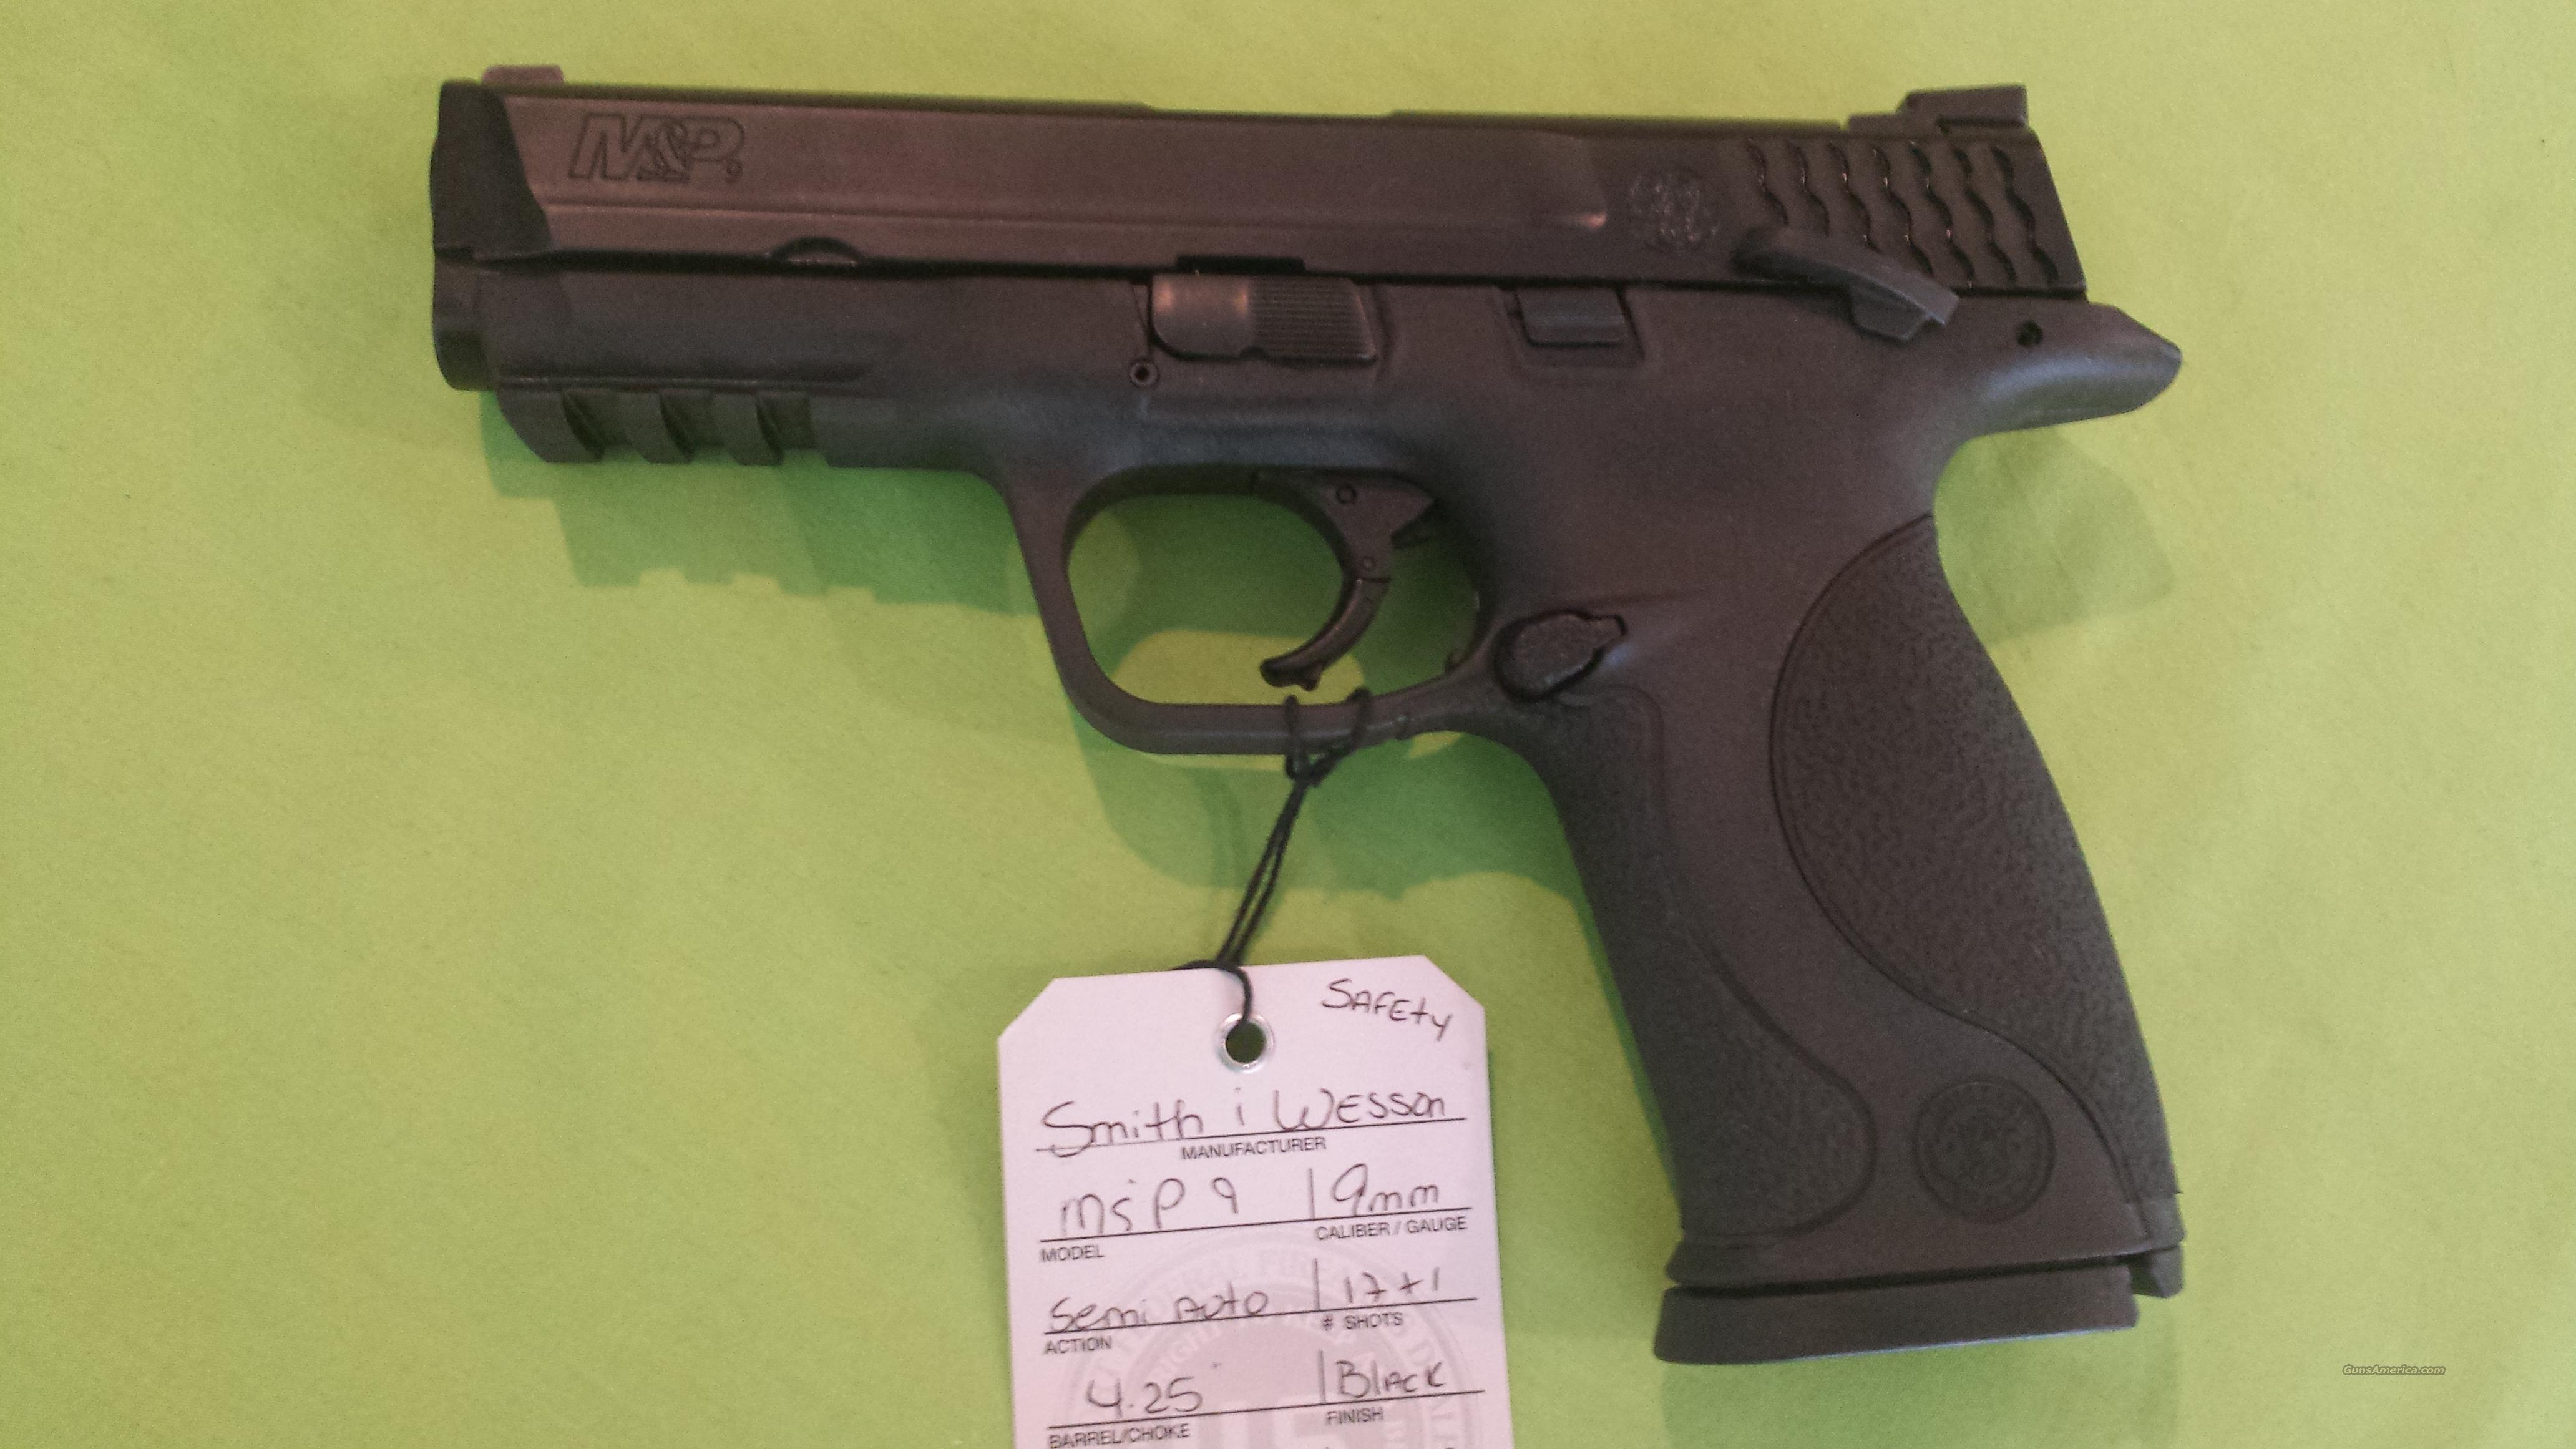 Smith & Wesson M&P 9 9 9mm 4.25 17+1 S&W M&P SAFETY  Guns > Pistols > Smith & Wesson Pistols - Autos > Polymer Frame